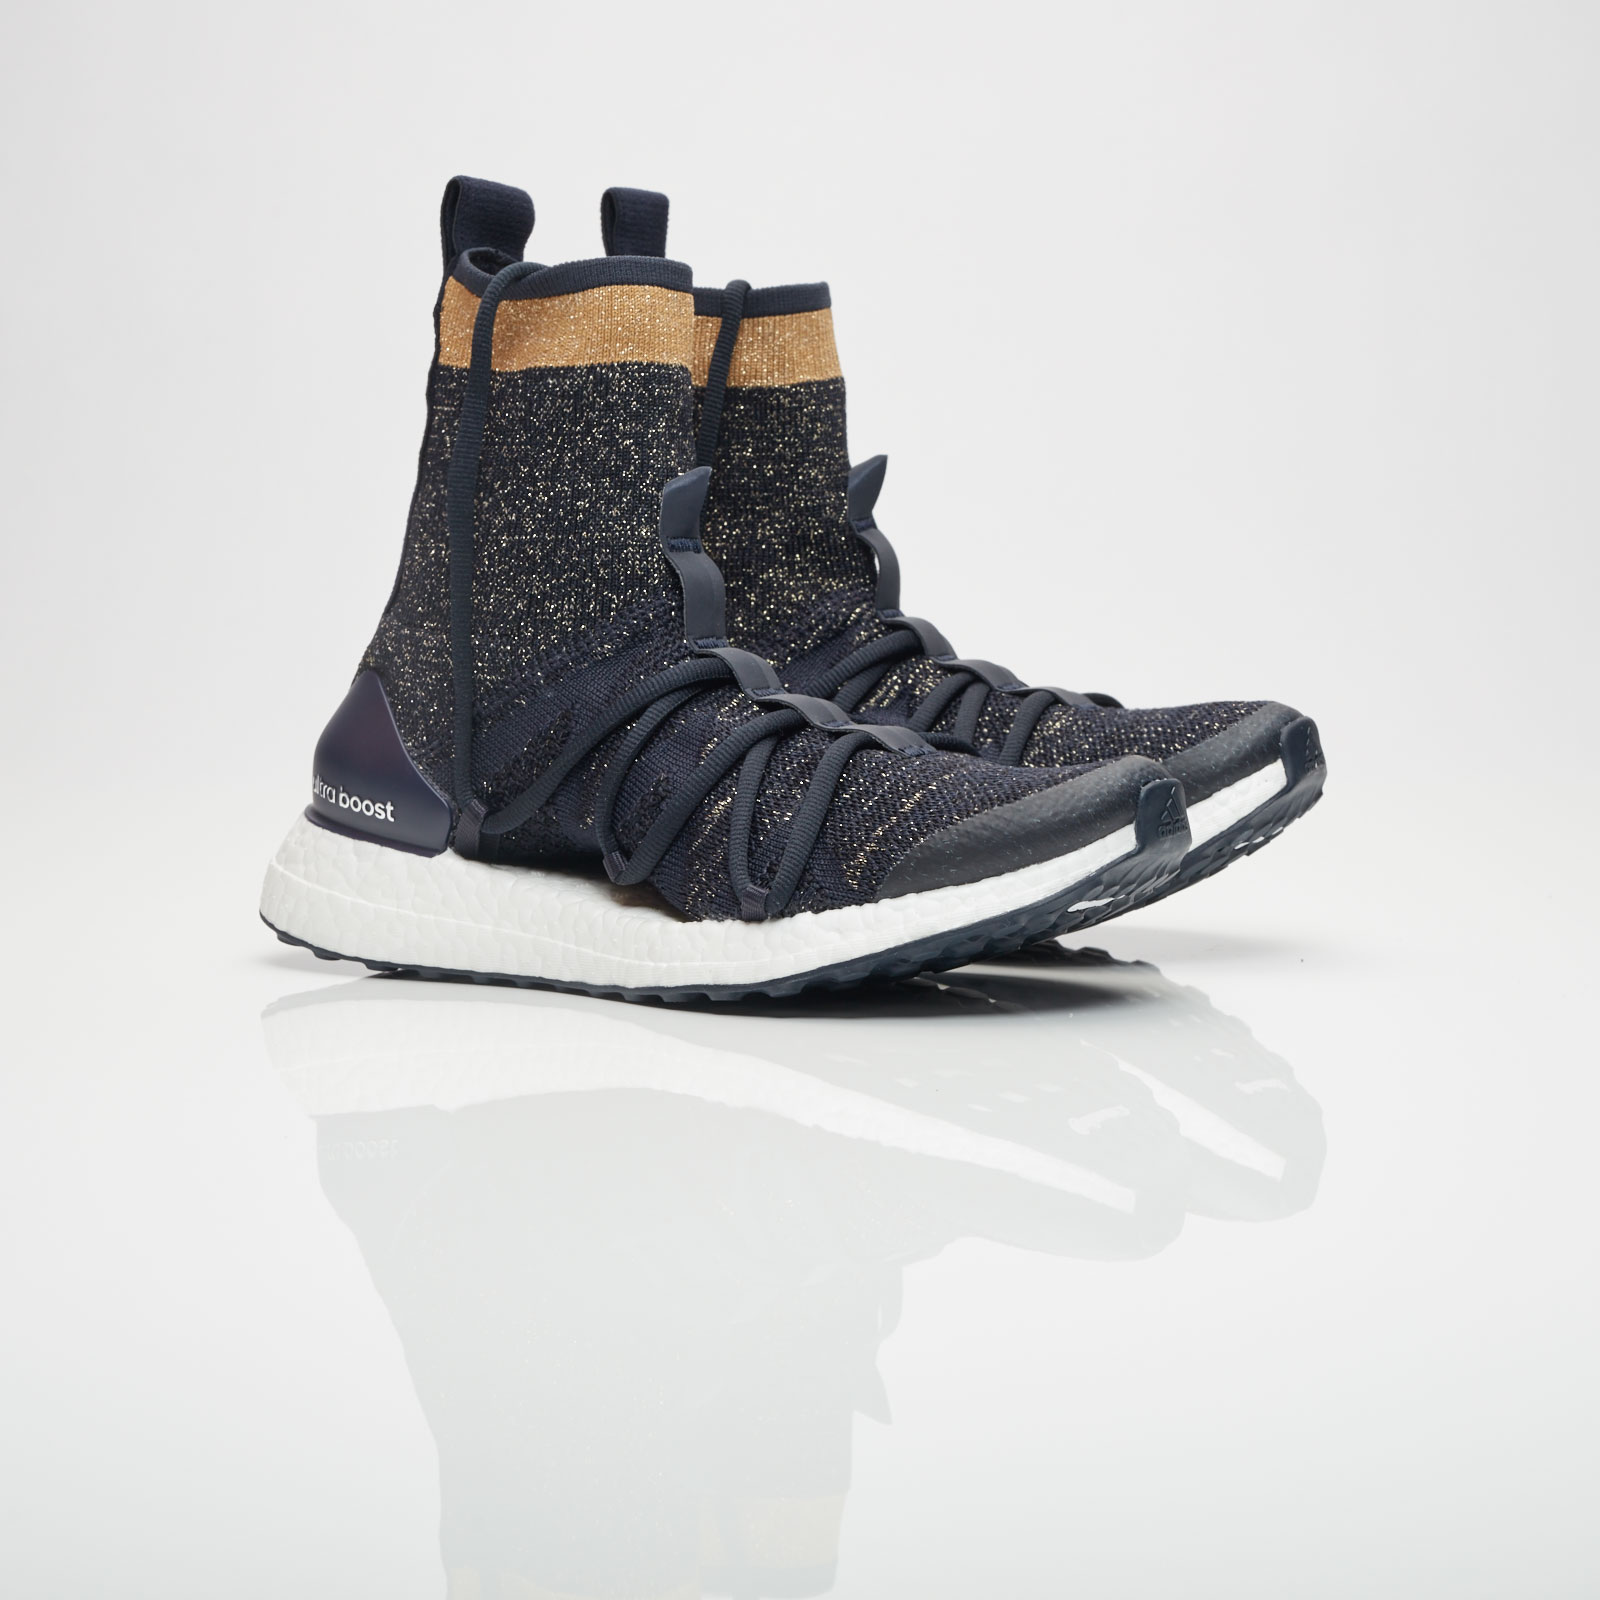 new arrival 0599f daa1e adidas UltraBOOST X Mid - By1834 - Sneakersnstuff | sneakers ...